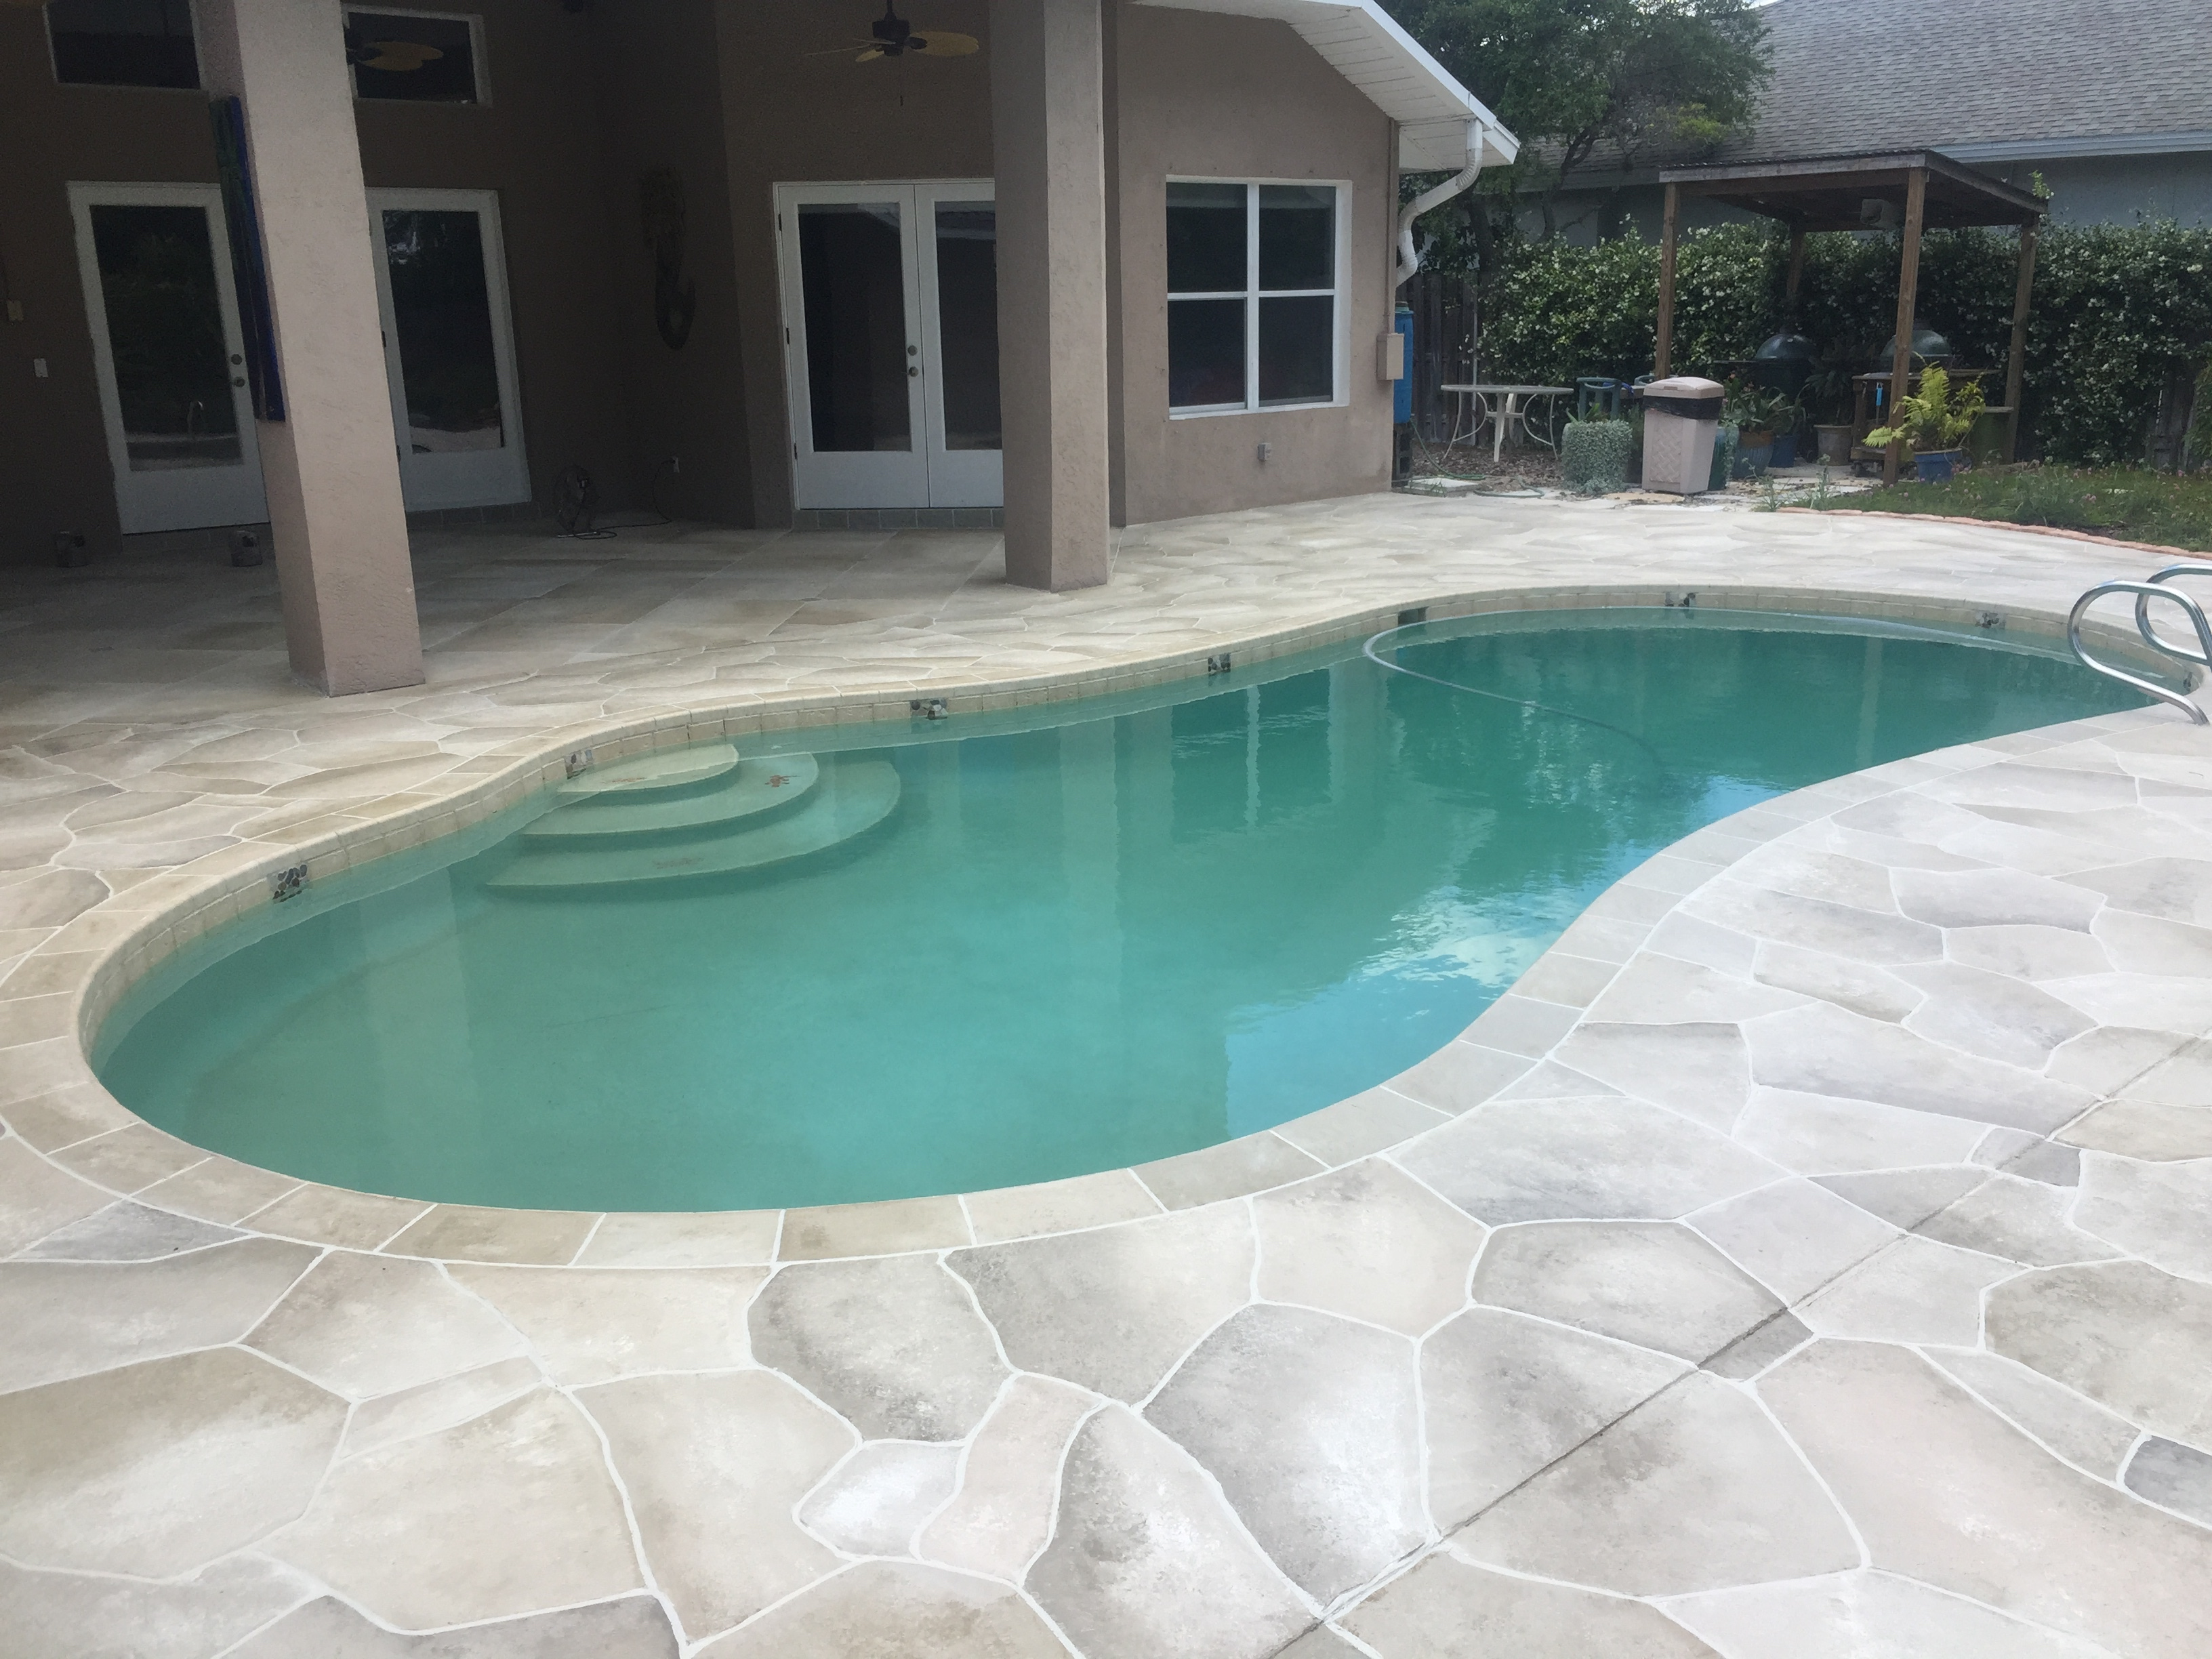 Travertine Pool Deck Sealer Concrete Designs Florida  Flagstone Patio